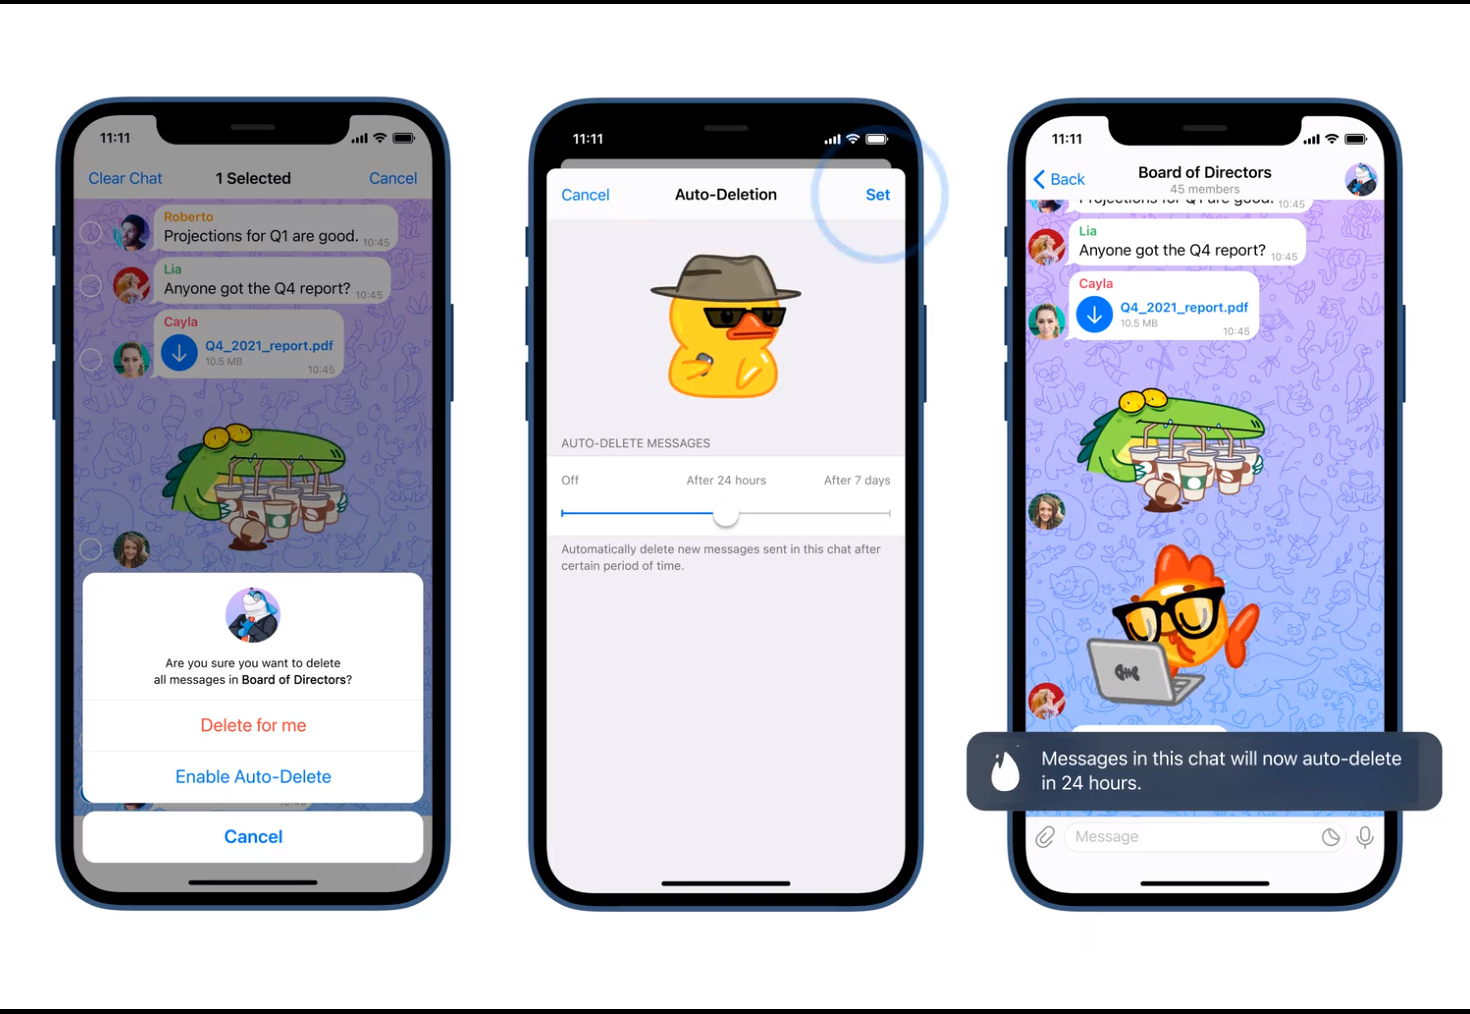 Telegram has introduced a whole bunch of features for its users in the app's new beta update v7.5.0